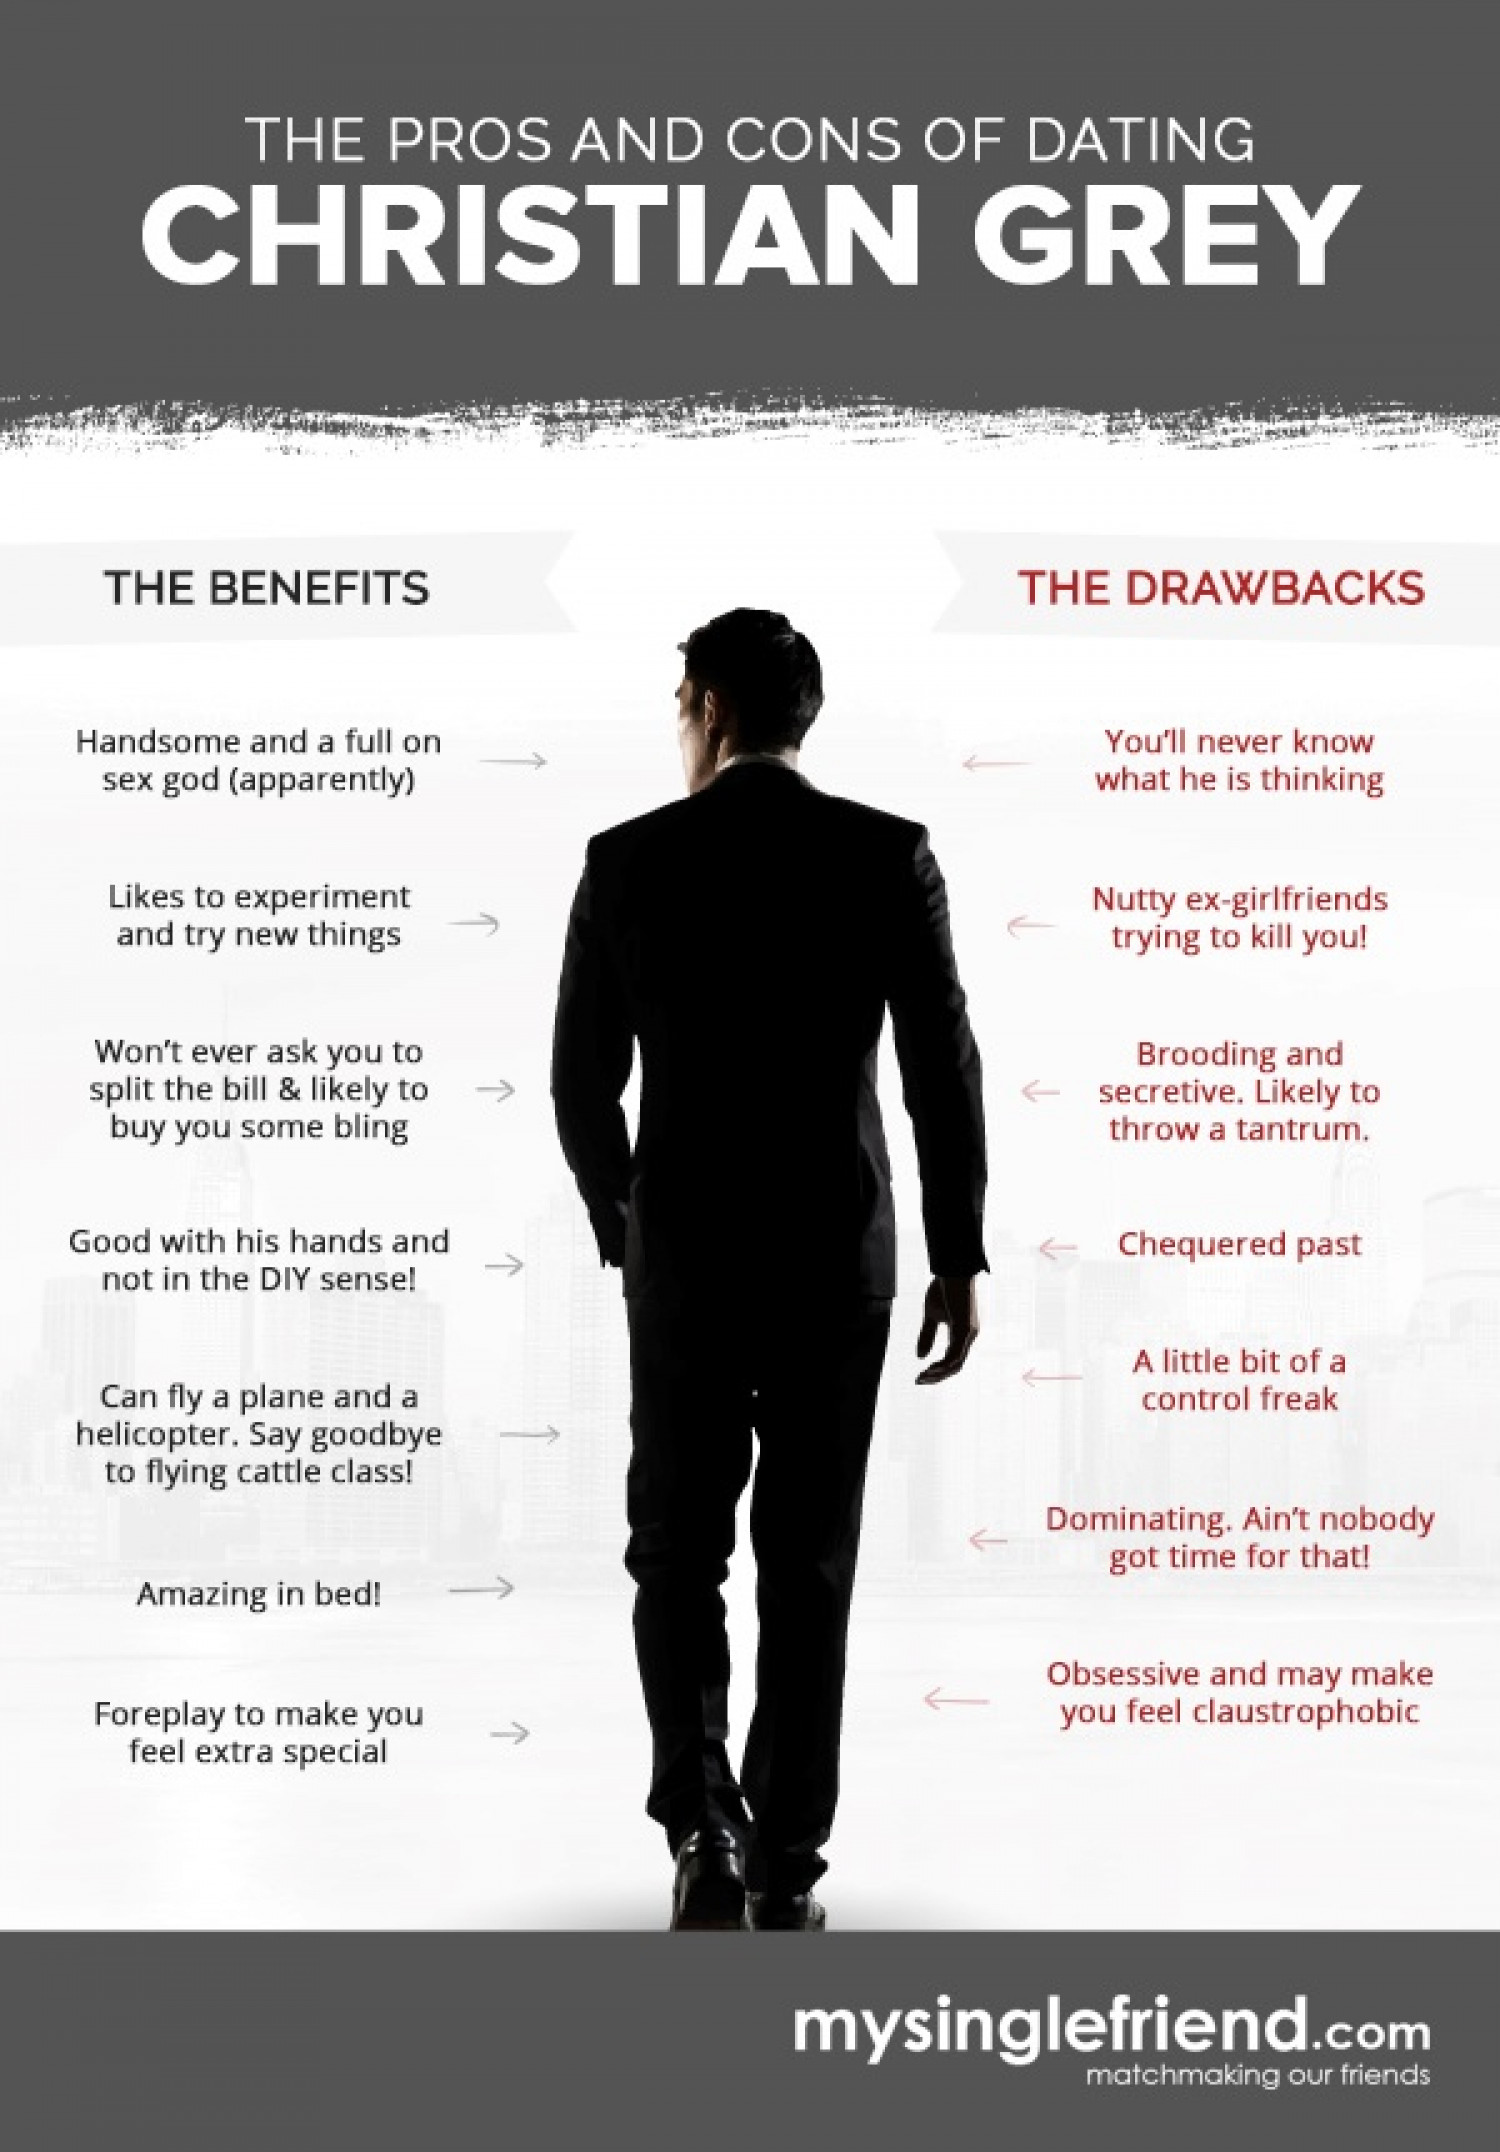 The Pros and Cons of Dating Christian Grey Infographic